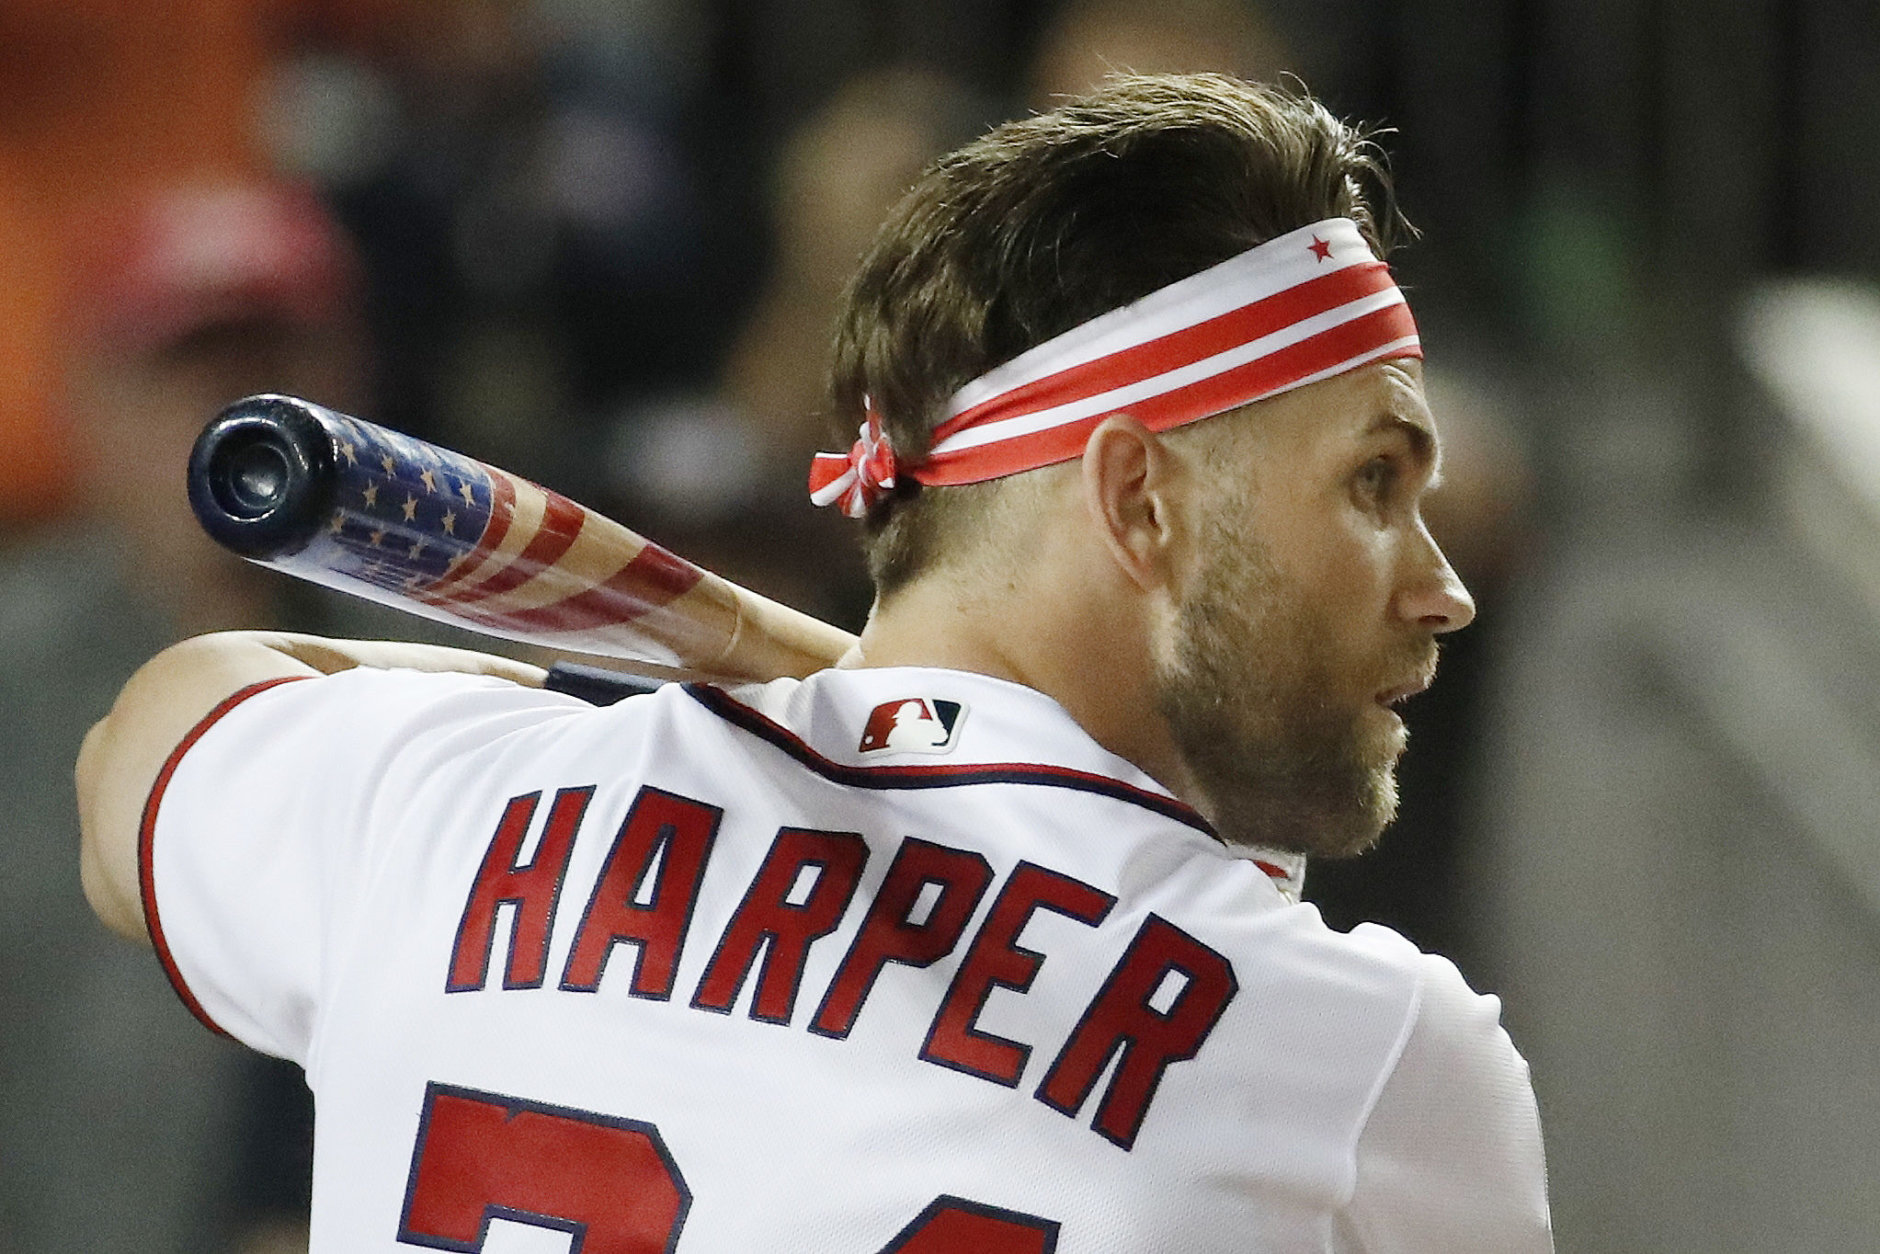 Washington Nationals Bryce Harper (34) waits for his pitch during the MLB Home Run Derby, at Nationals Park, Monday, July 16, 2018 in Washington. The 89th MLB baseball All-Star Game will be played Tuesday. (AP Photo/Alex Brandon)